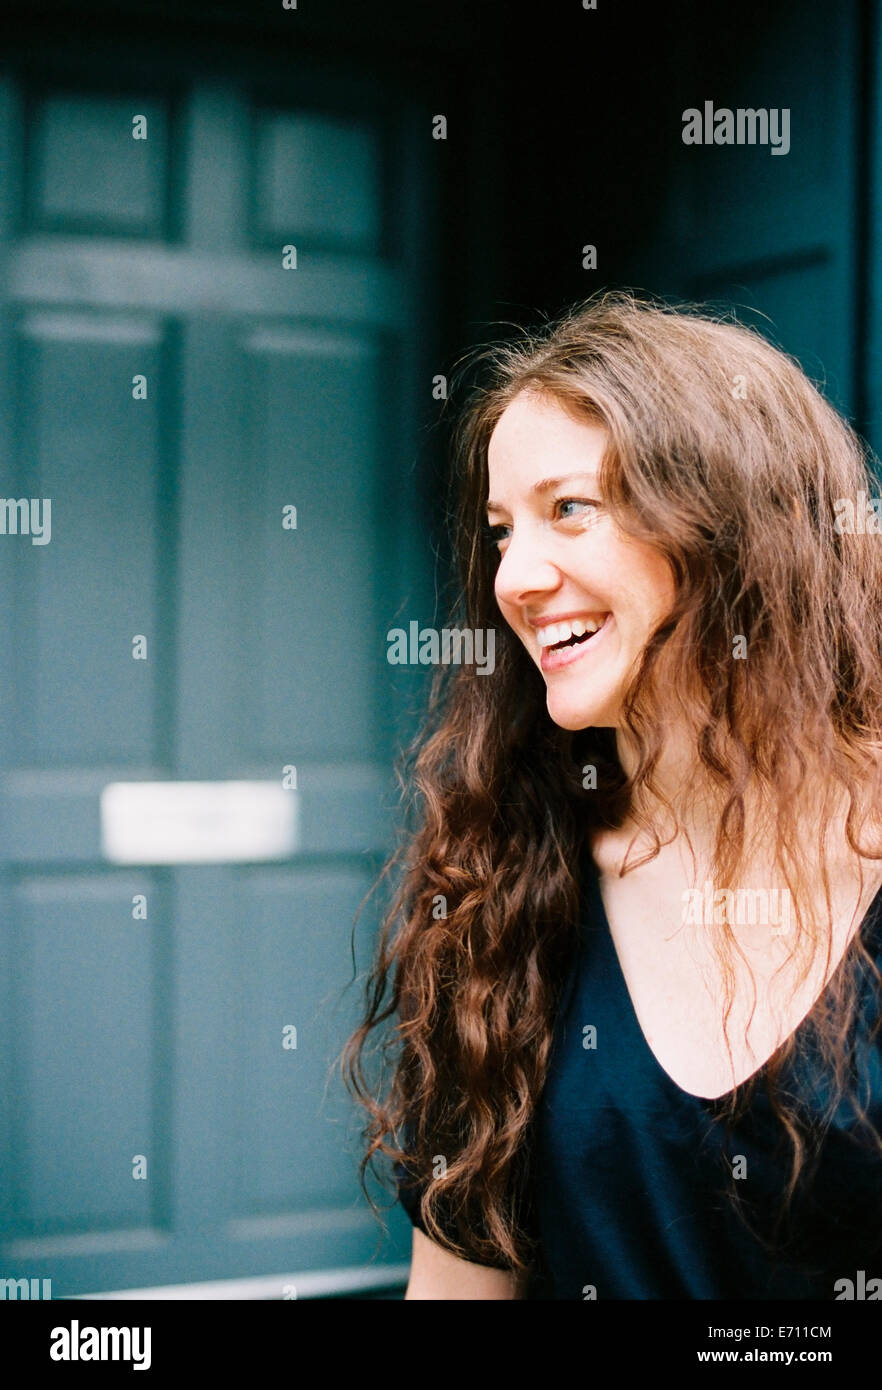 A woman smiling standing at an open doorway. - Stock Image